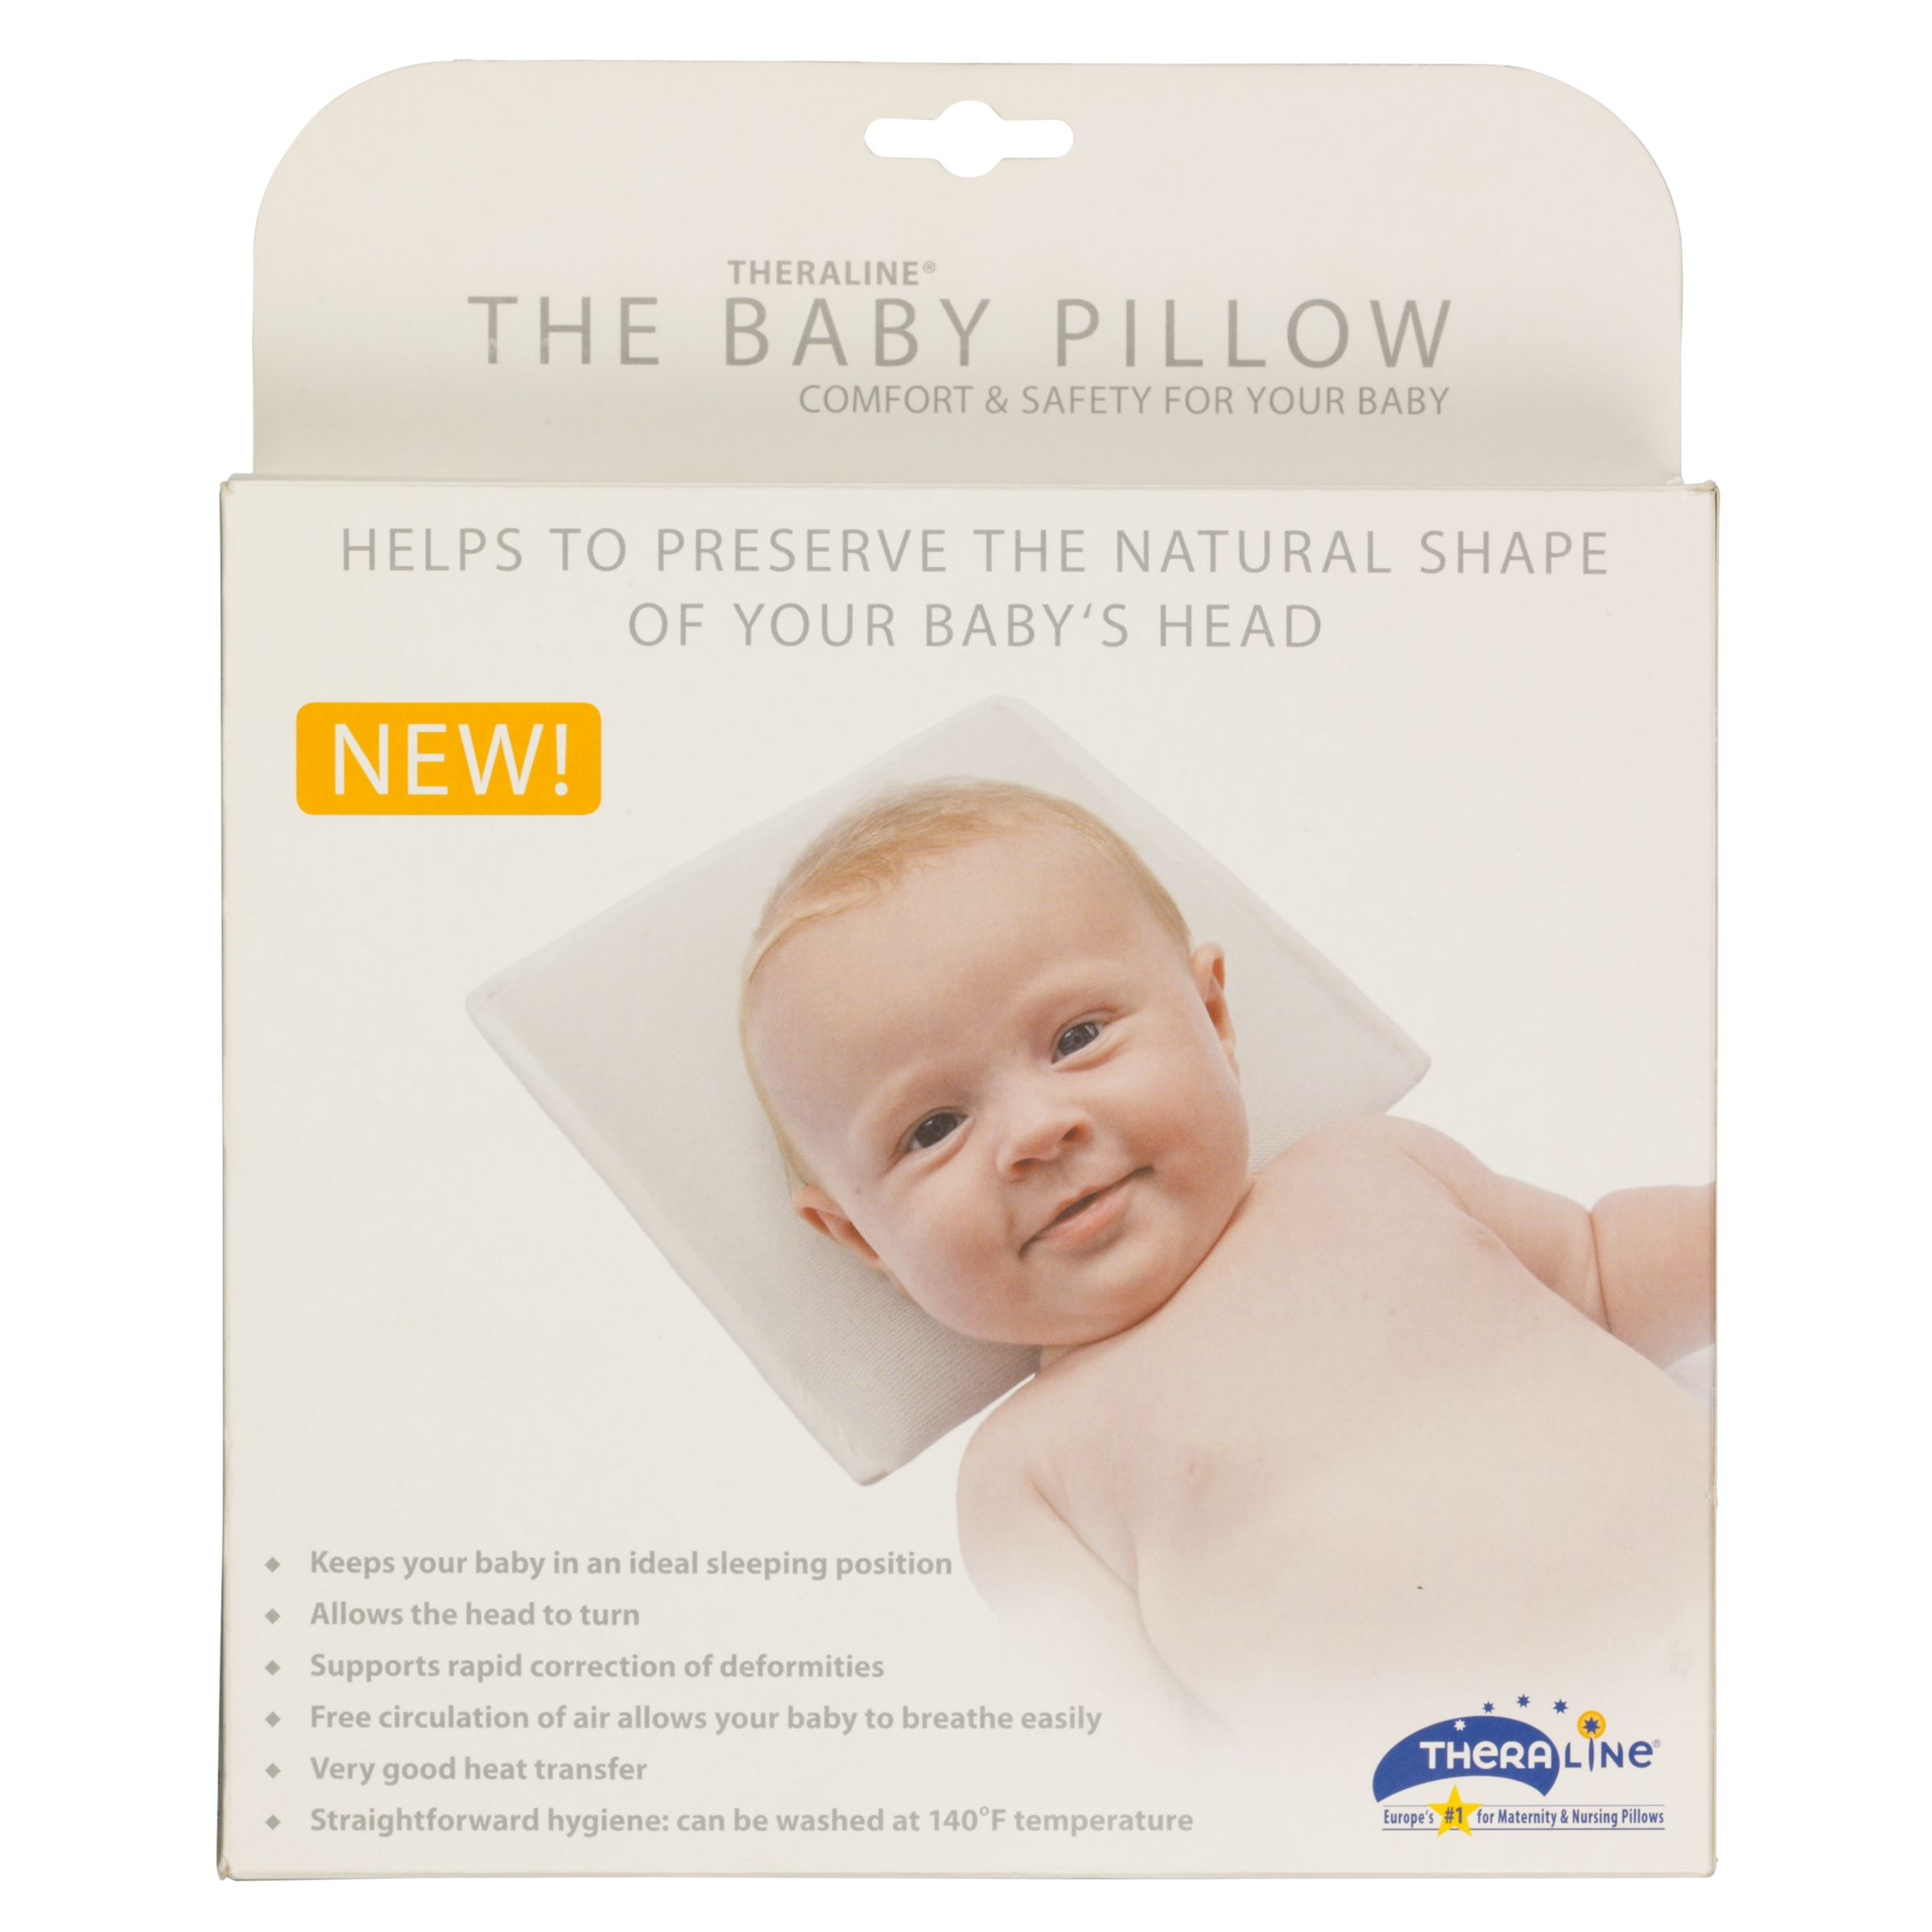 Theraline Theraline Baby Pillow